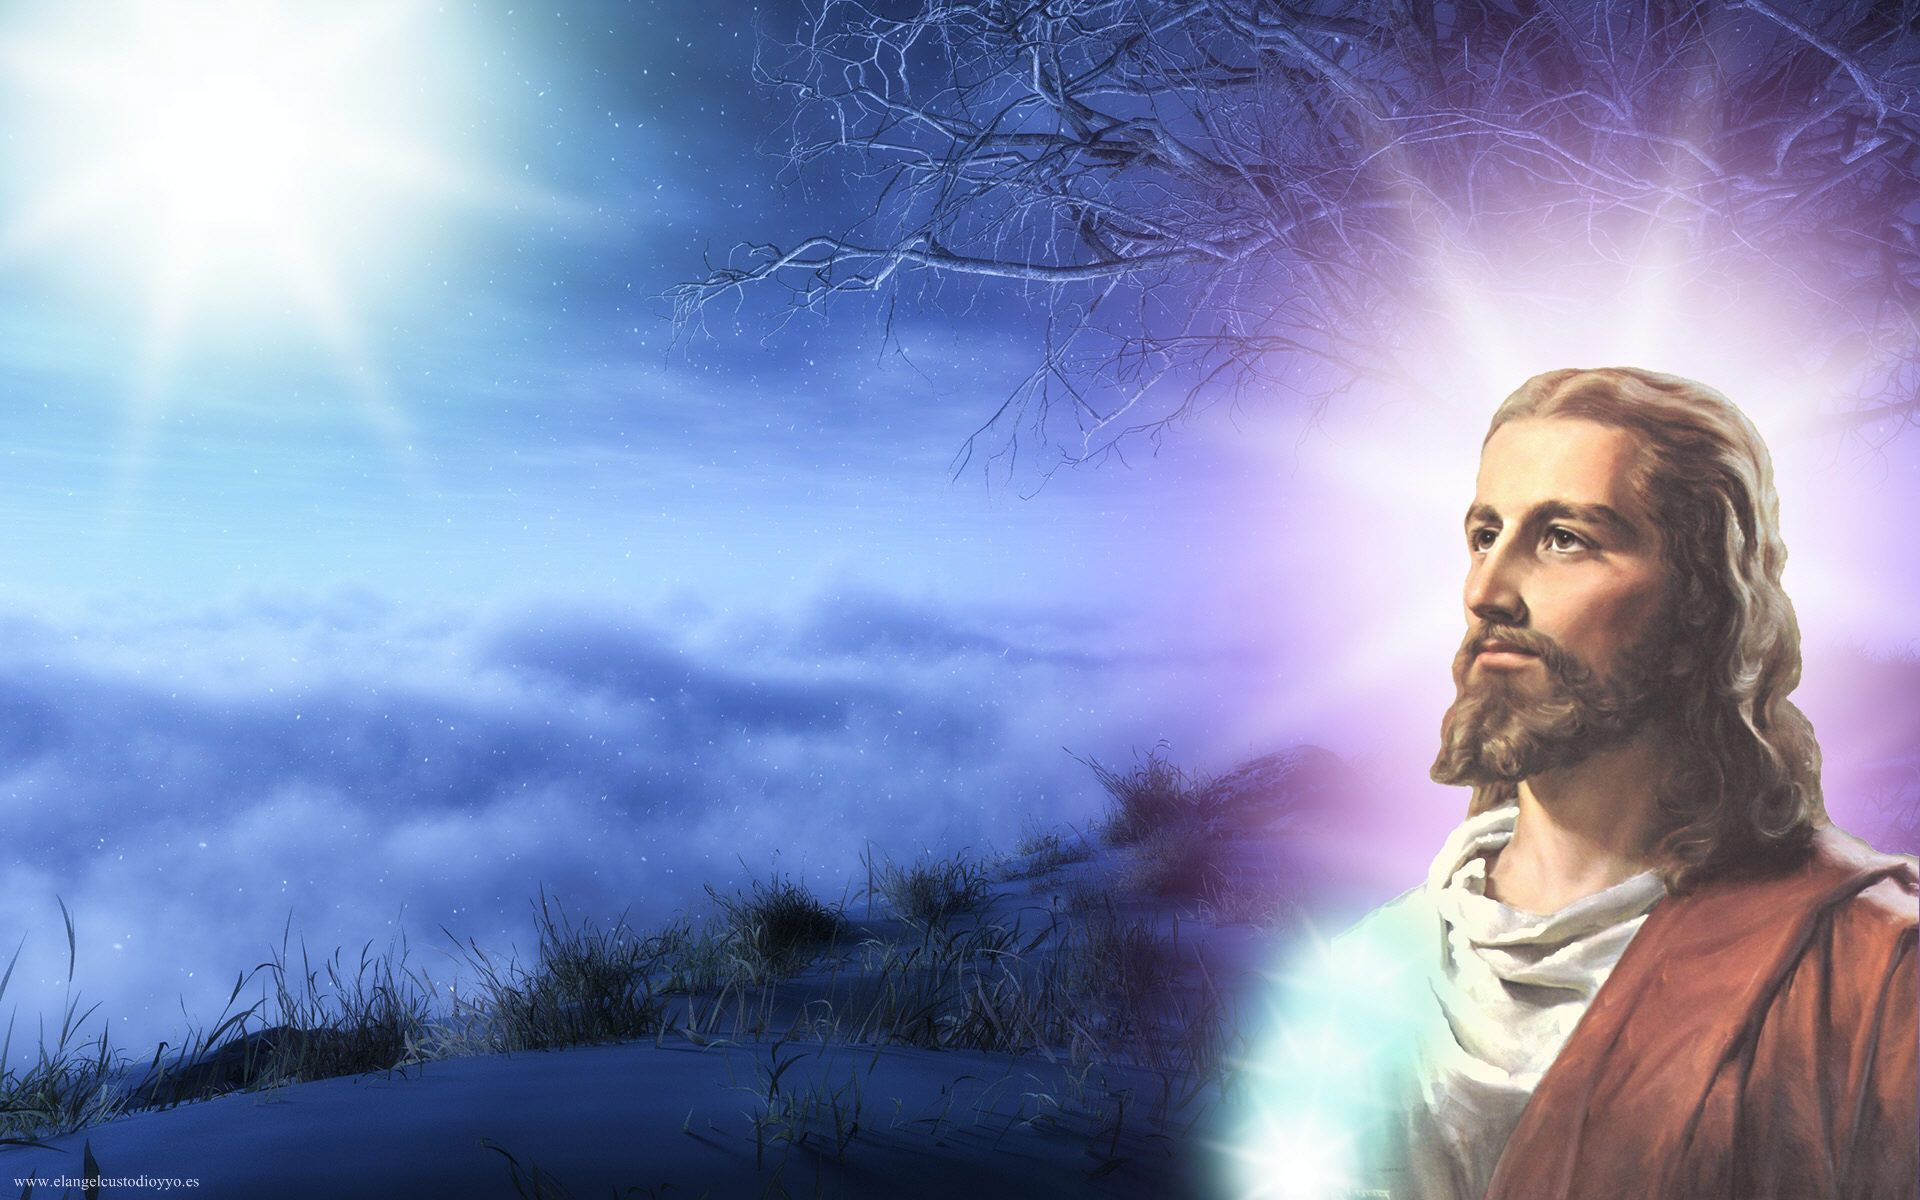 Download free lord jesus wallpapers for your mobile phone by